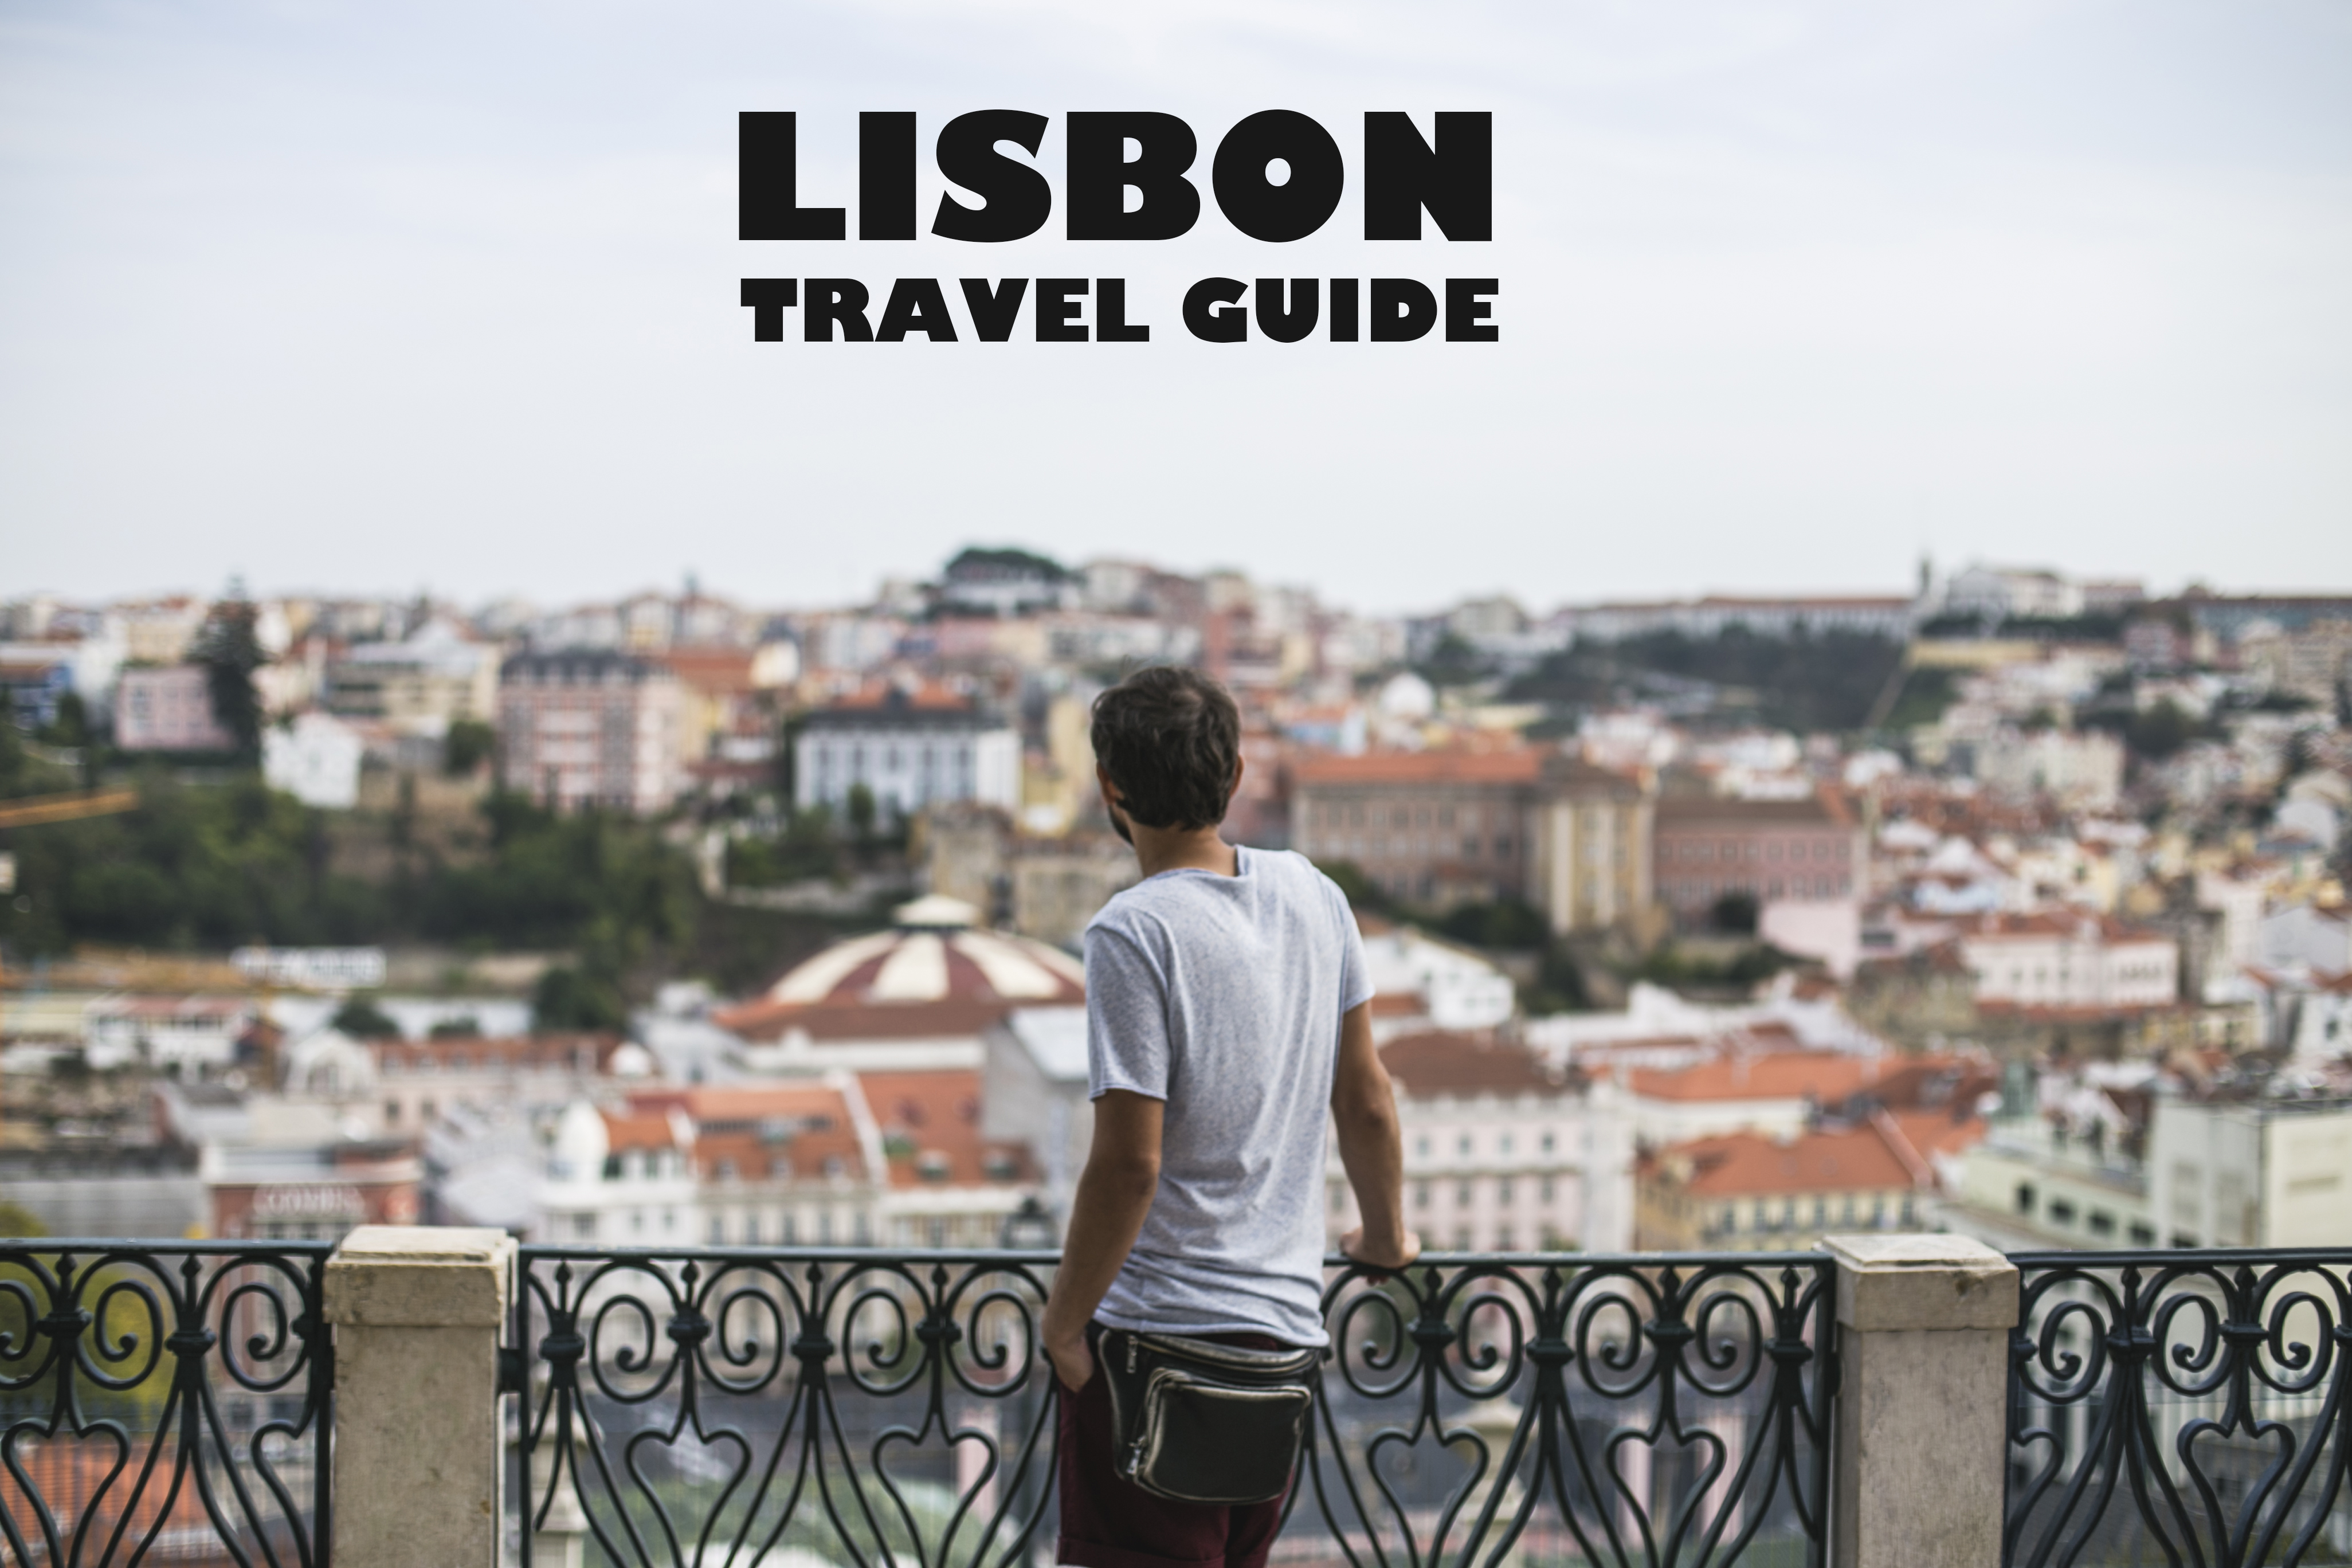 Lisbon's Beaches - A beach guide fully updated for 2019!